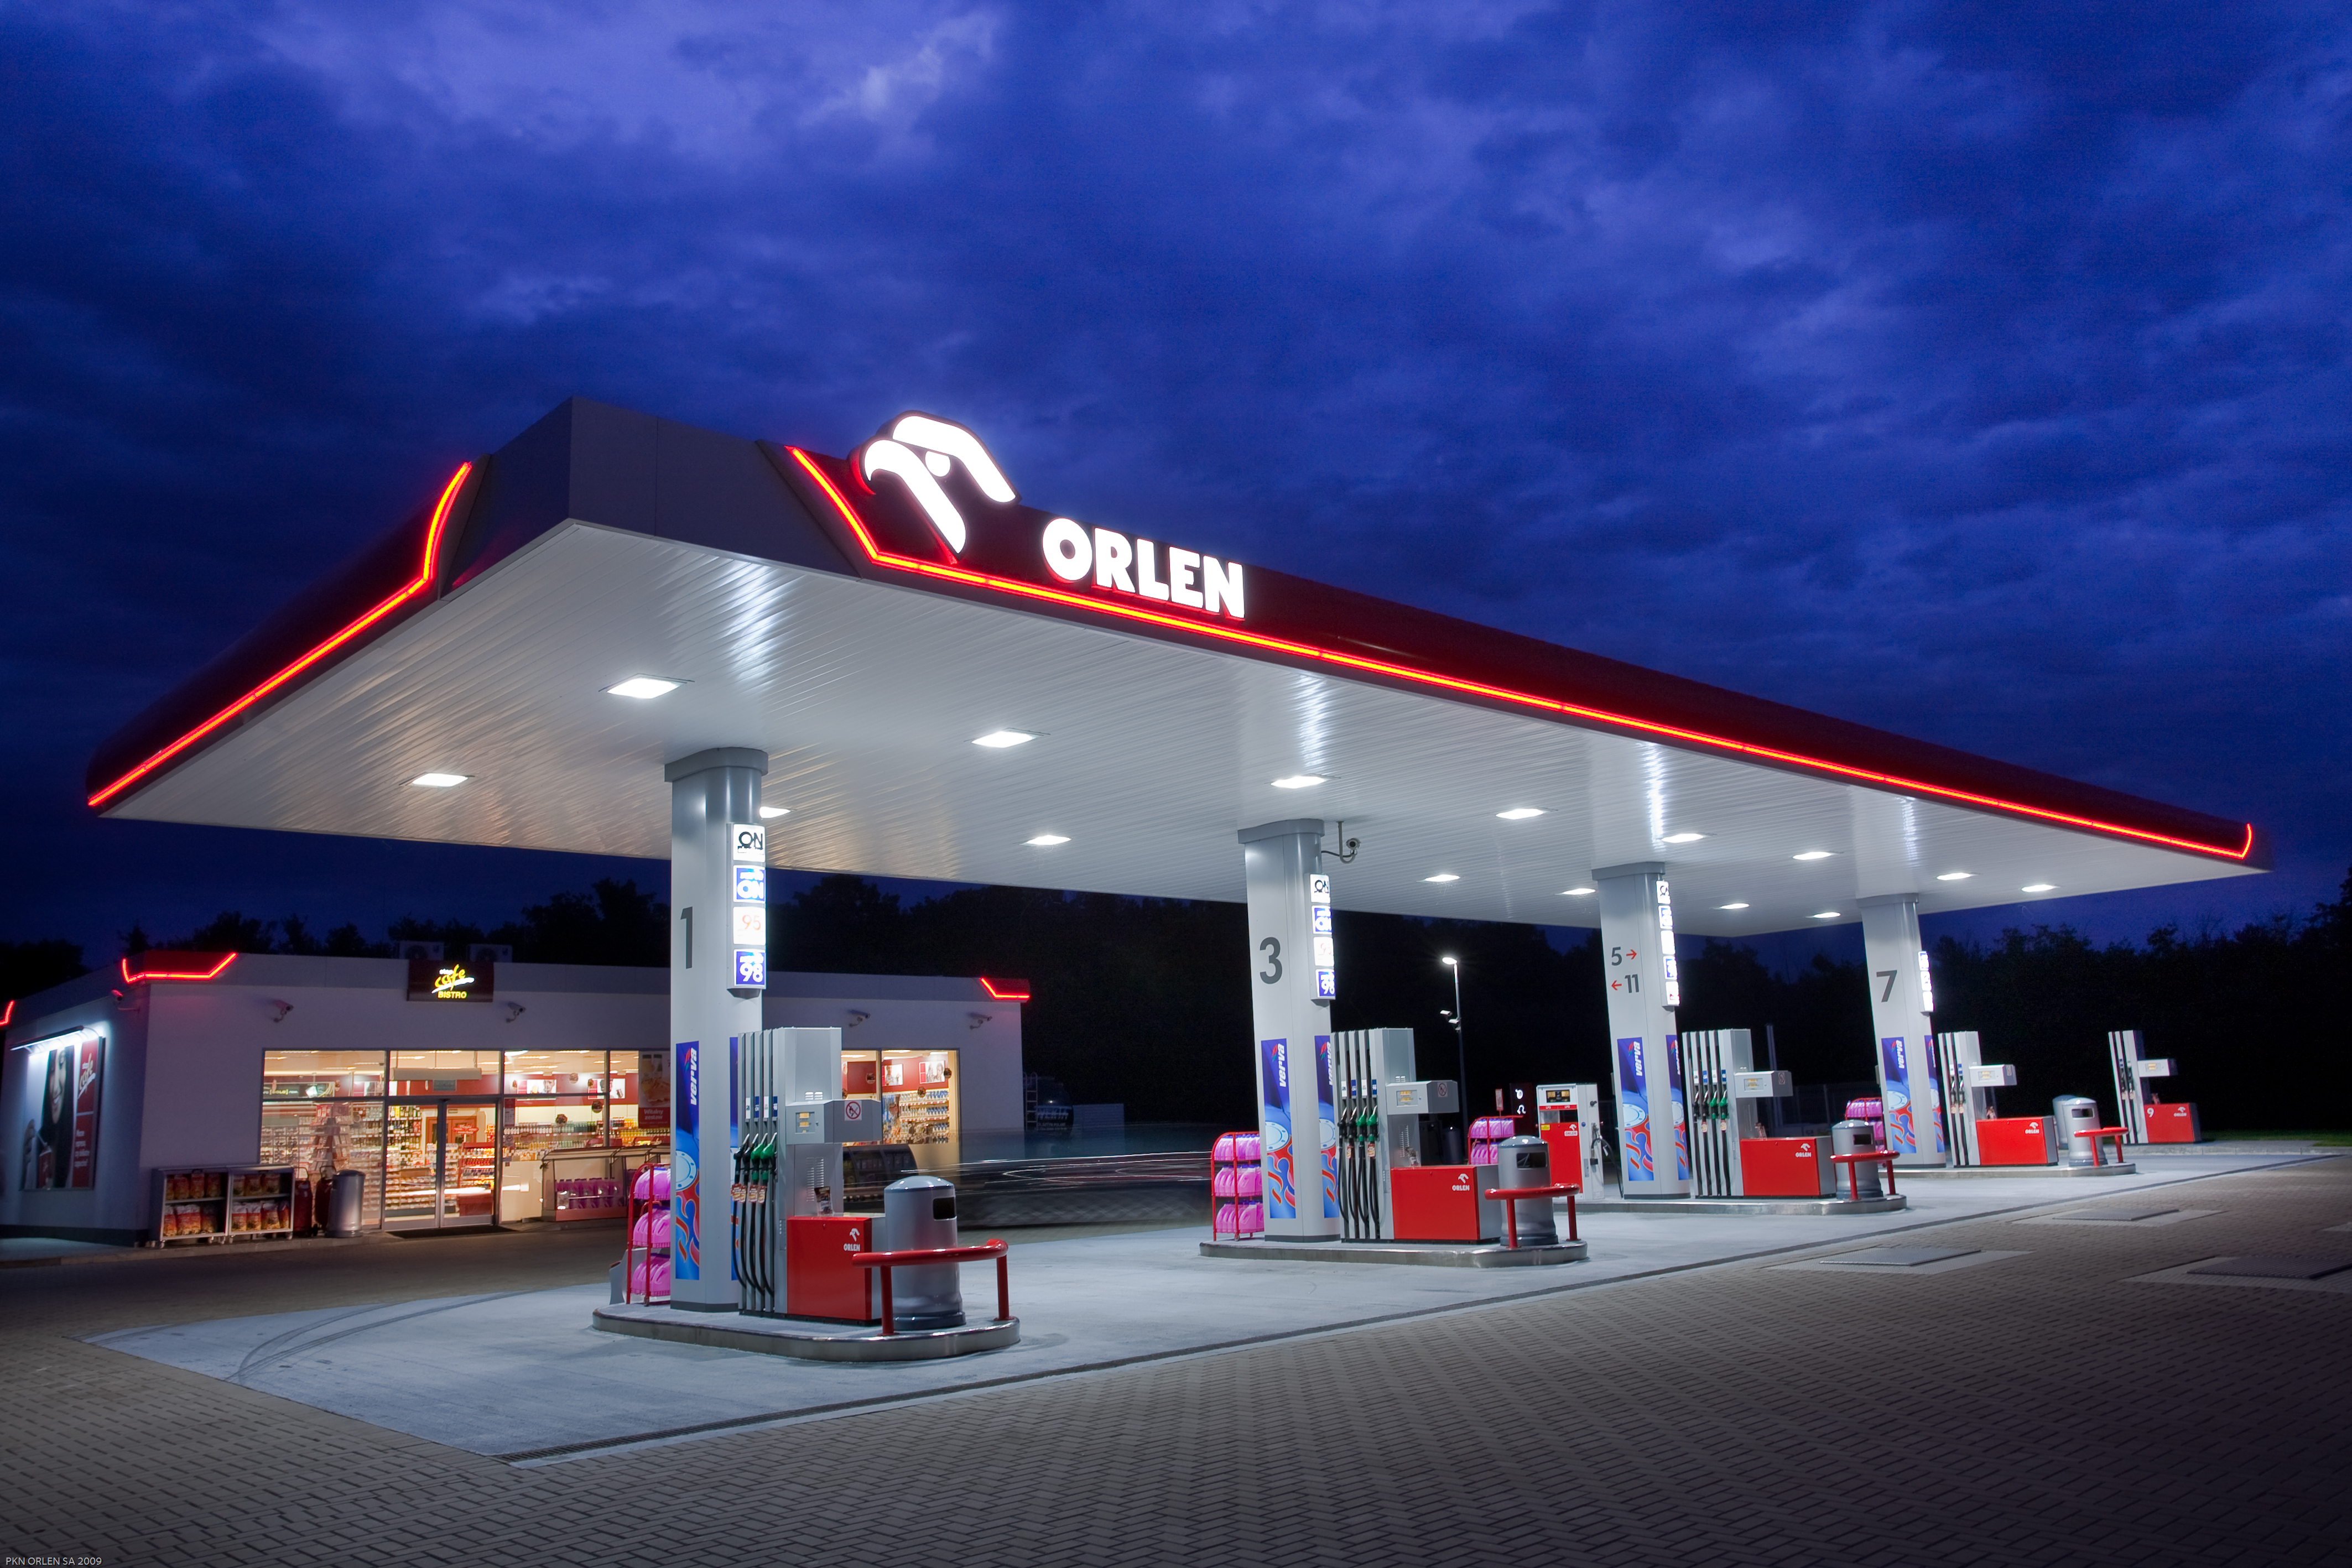 IN POLAND, A FUEL GIANT IS APPEARING